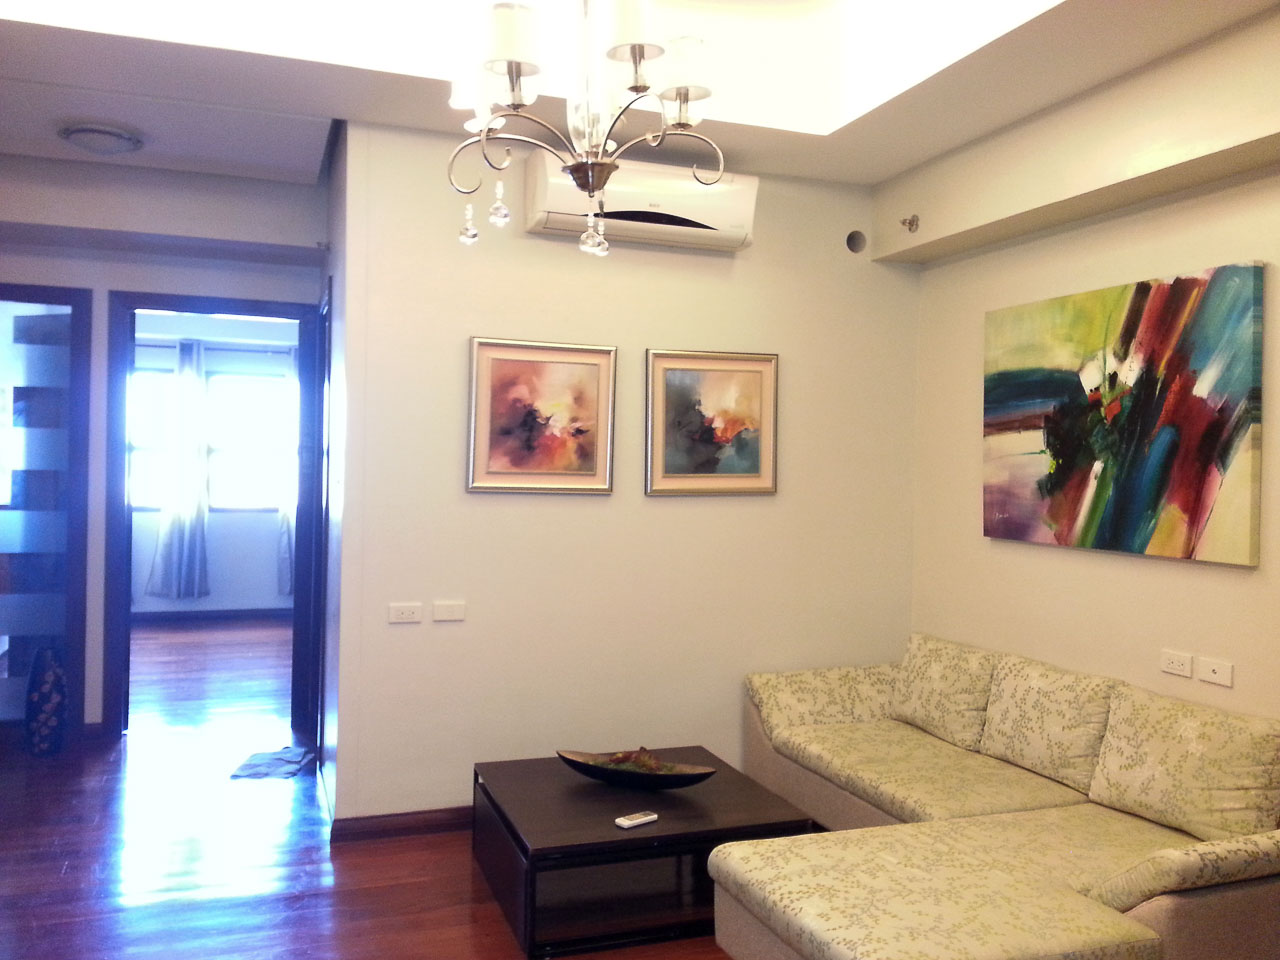 1 Bedroom Condo For Rent In Avalon Condominium Cebu Grand Realty